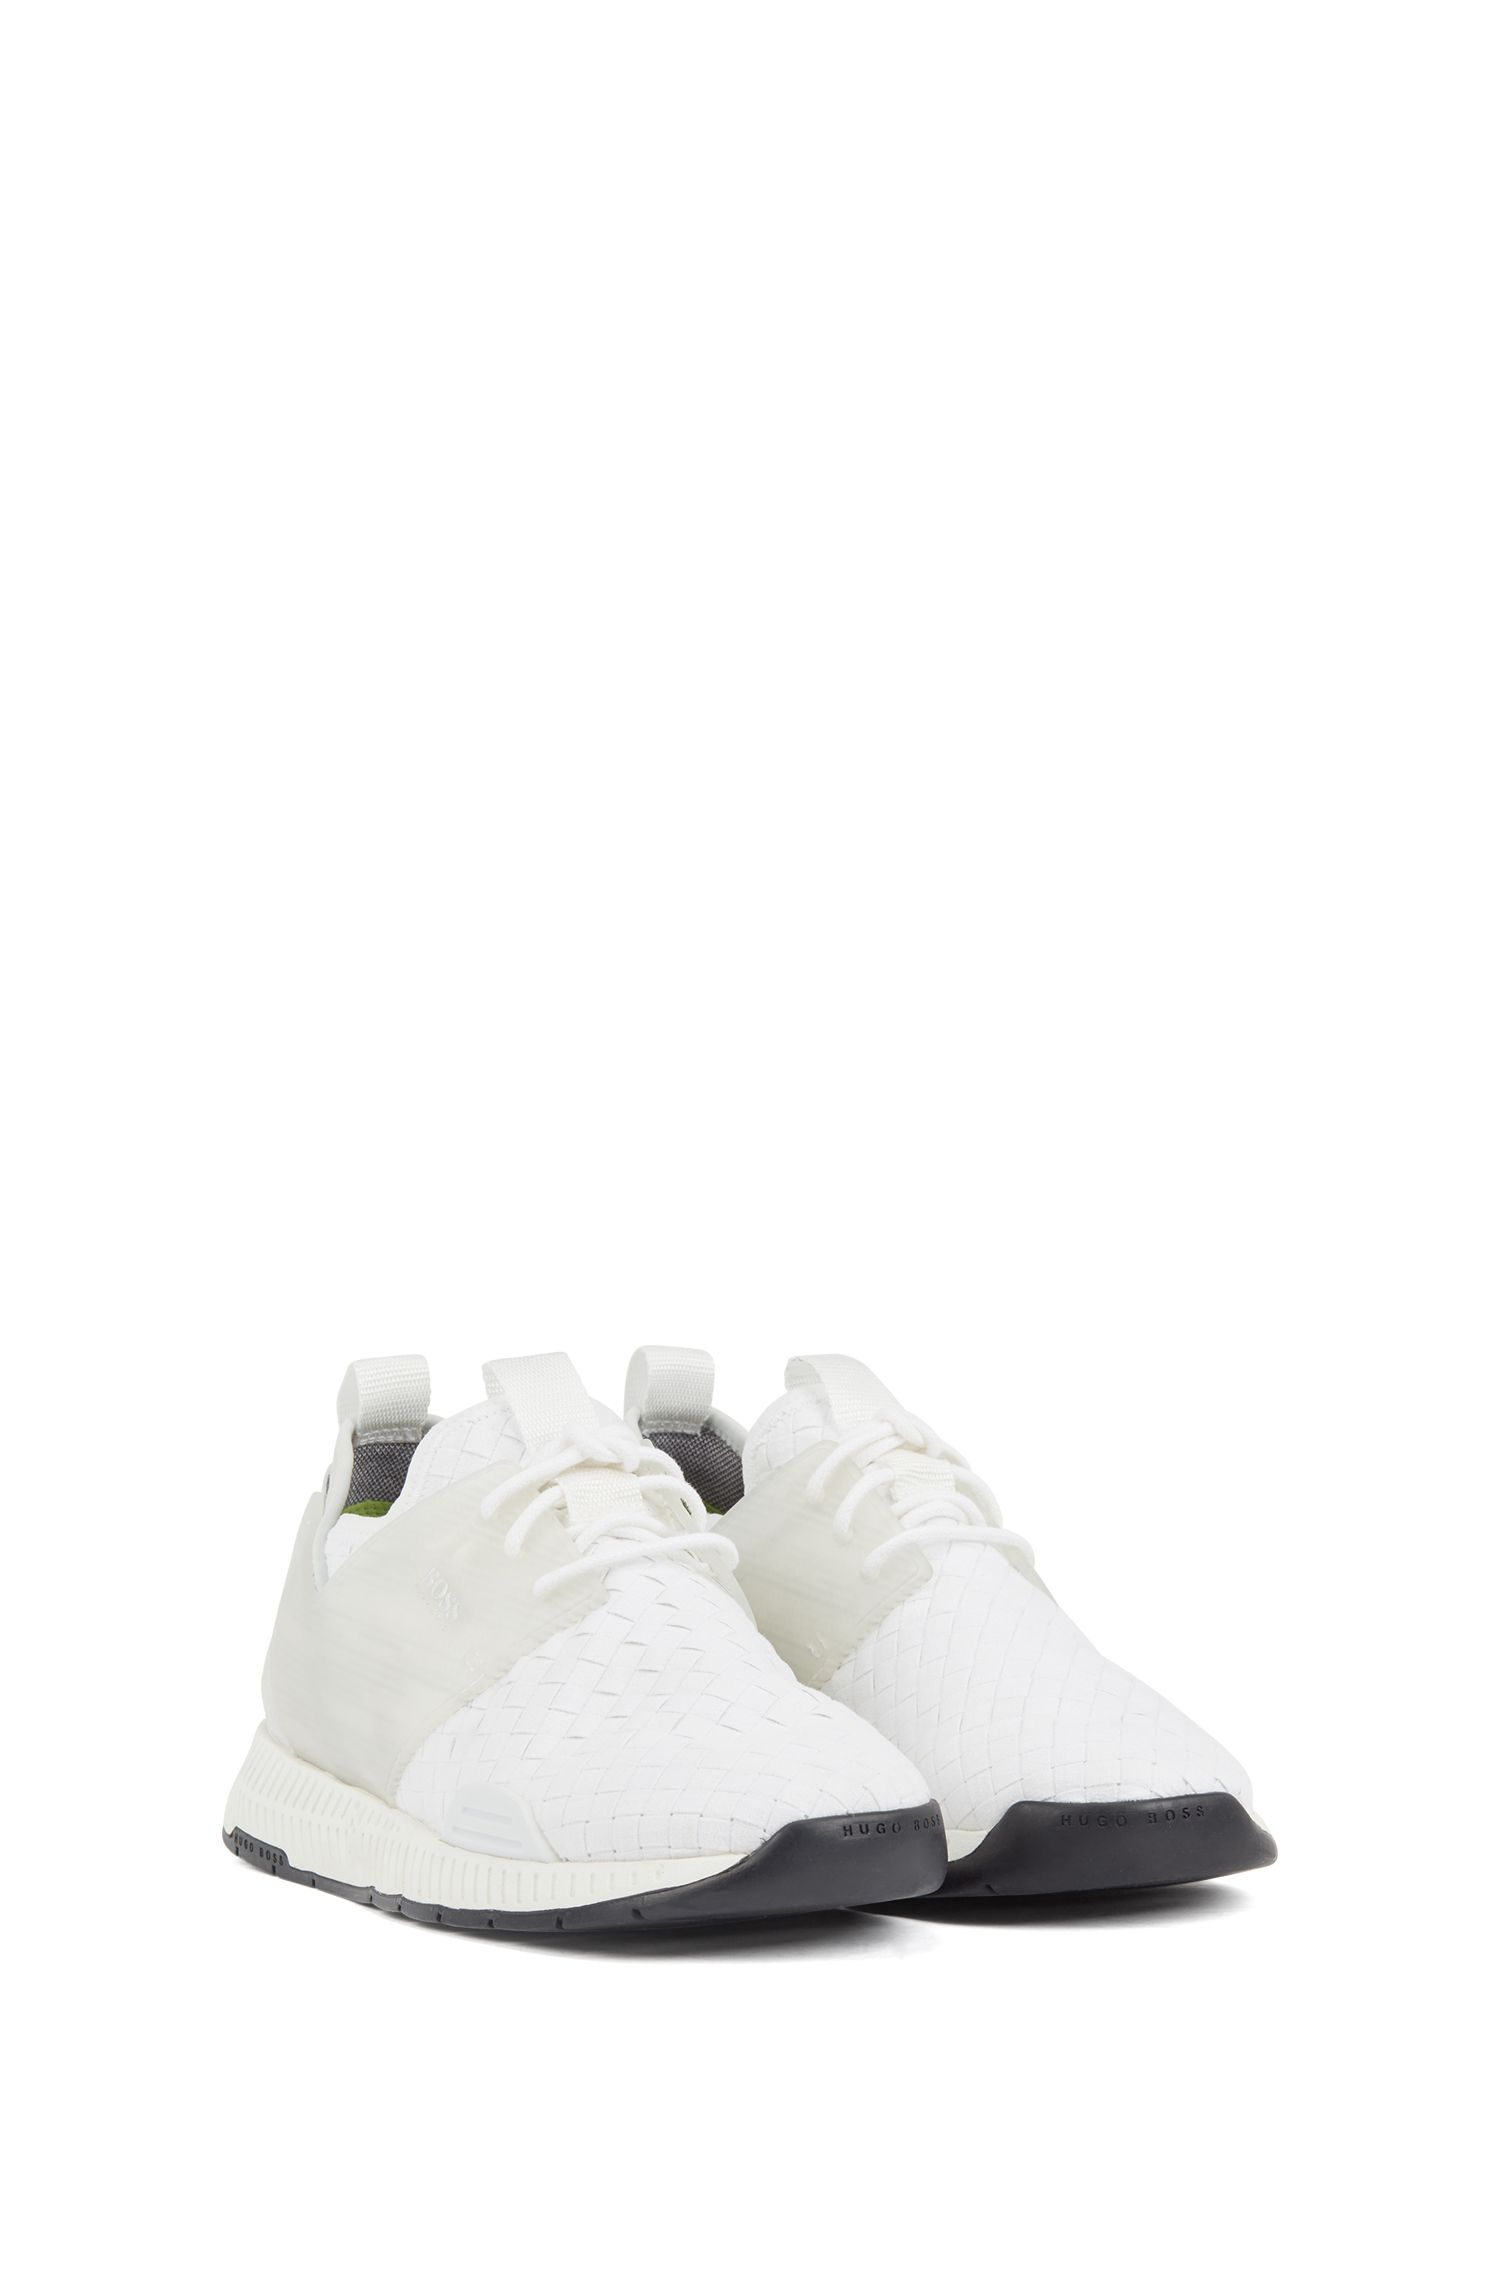 Running-style hybrid sneakers with EVA and rubber sole, White